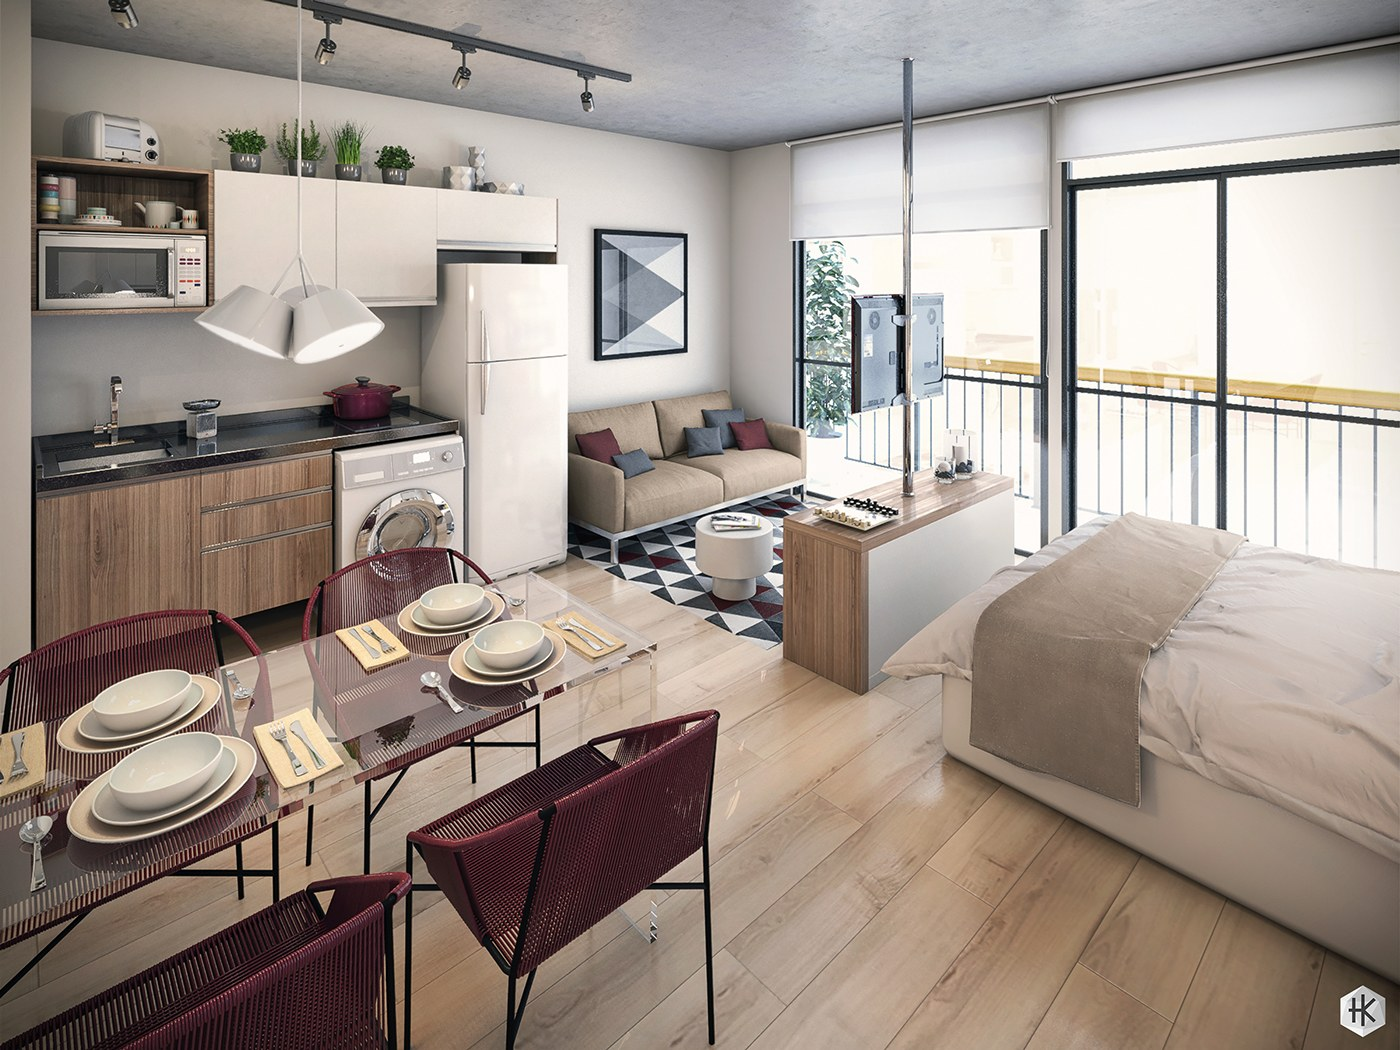 Studio Apartments Design 5 Small Studio Apartments With Beautiful Design